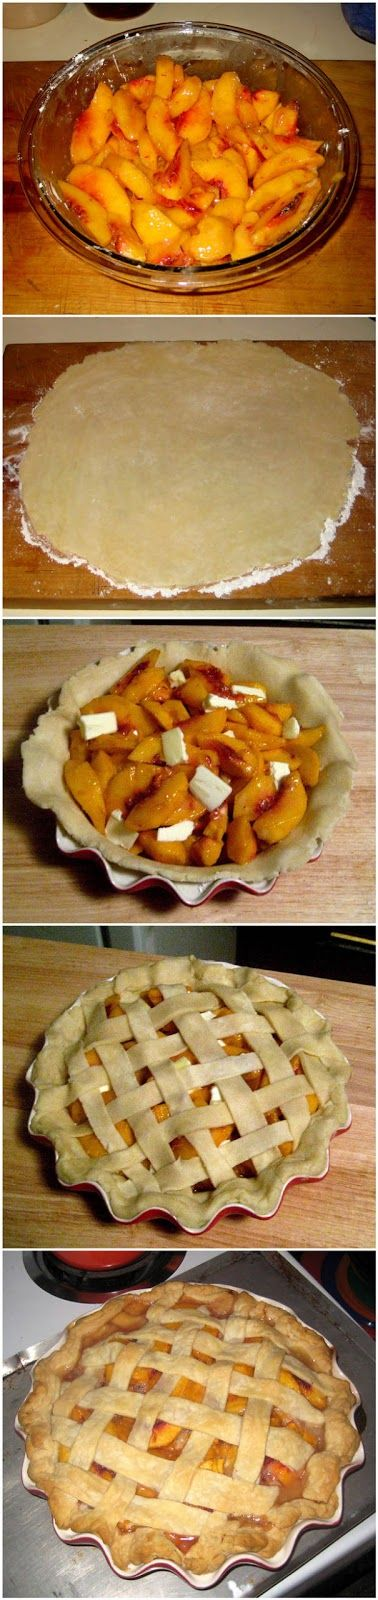 Delicious Peach Pie - I will probably save time by using ready made pie crusts.